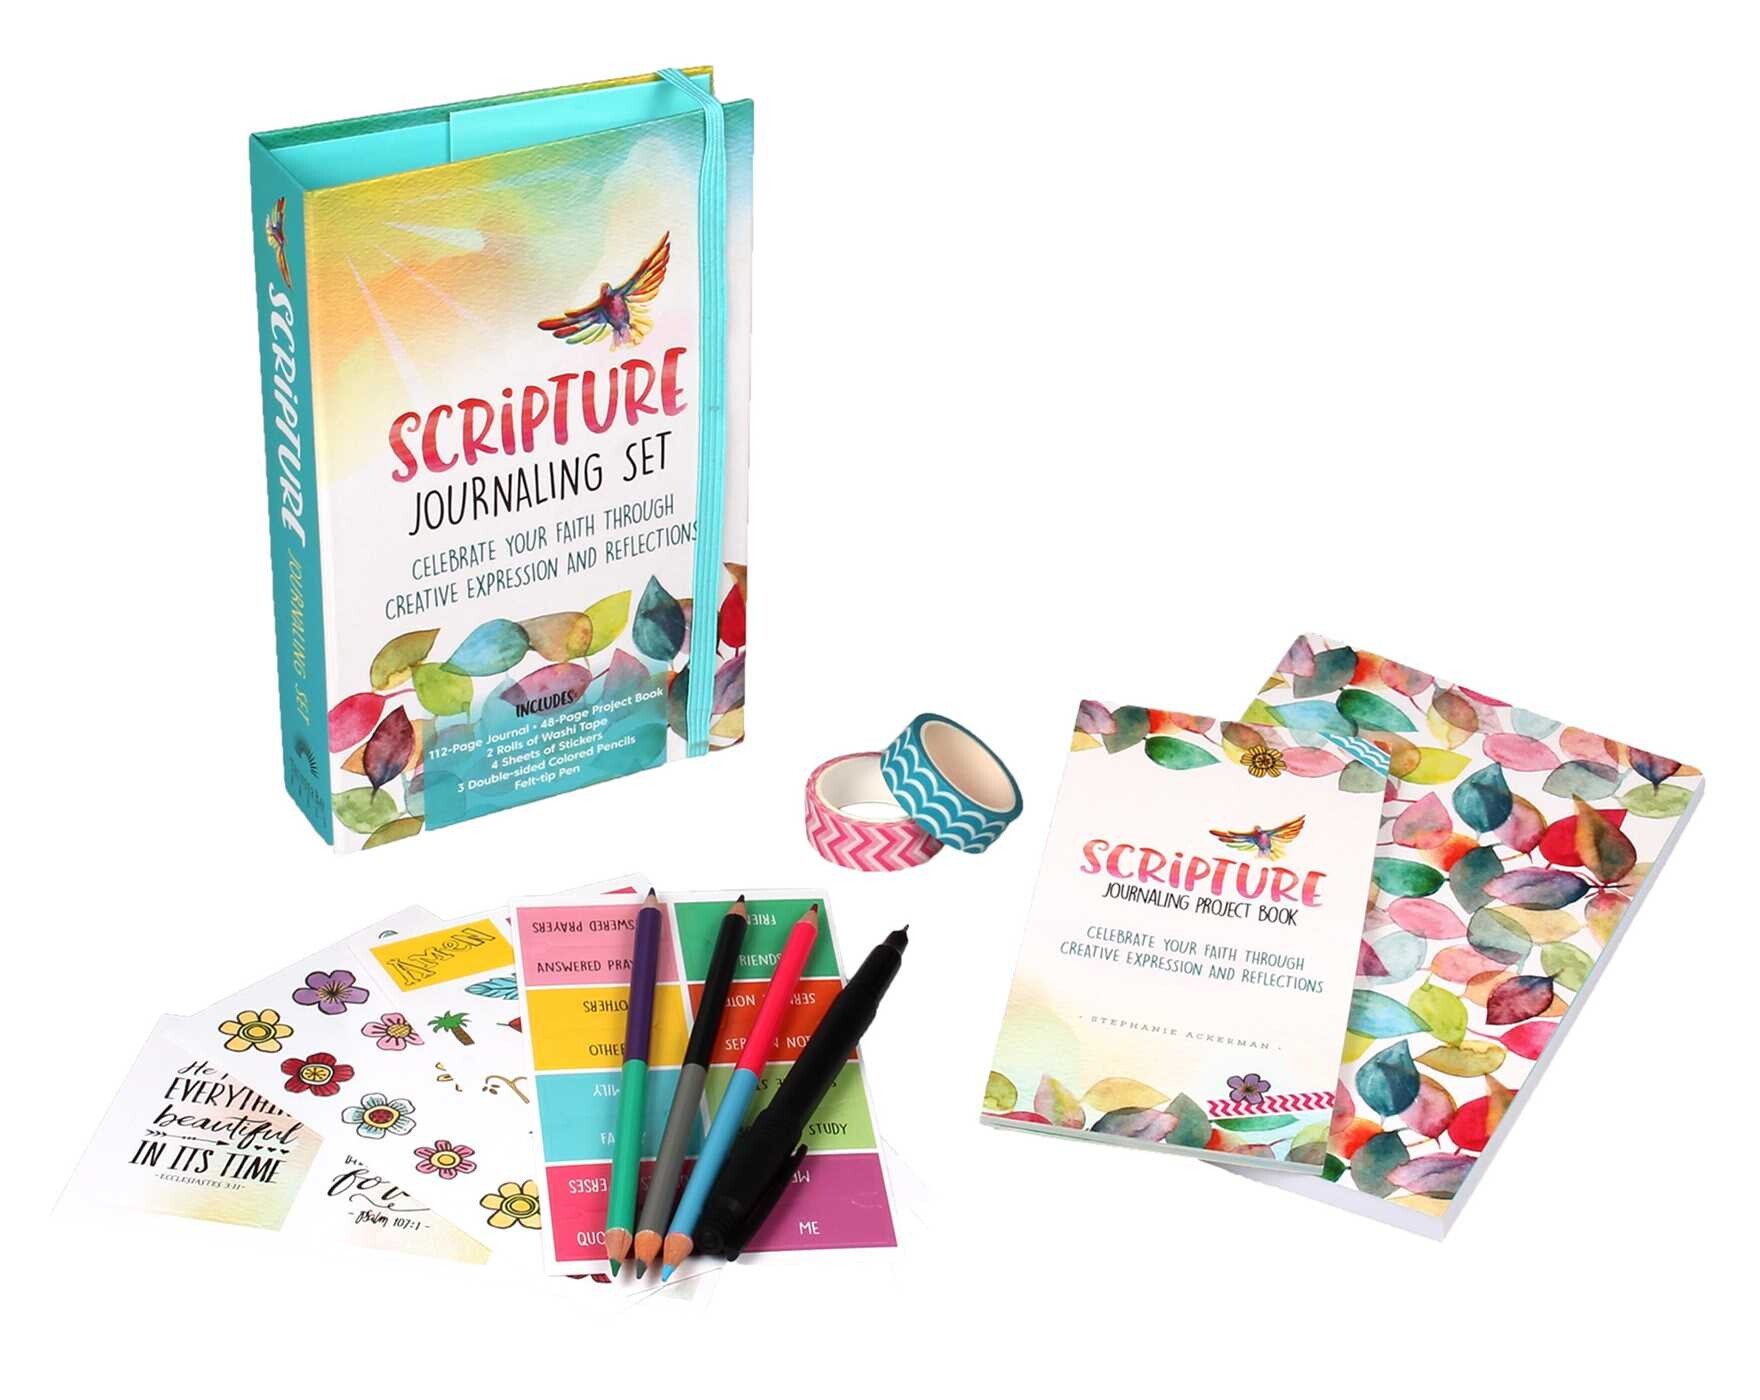 Scripture journaling set 9781684124206.in01